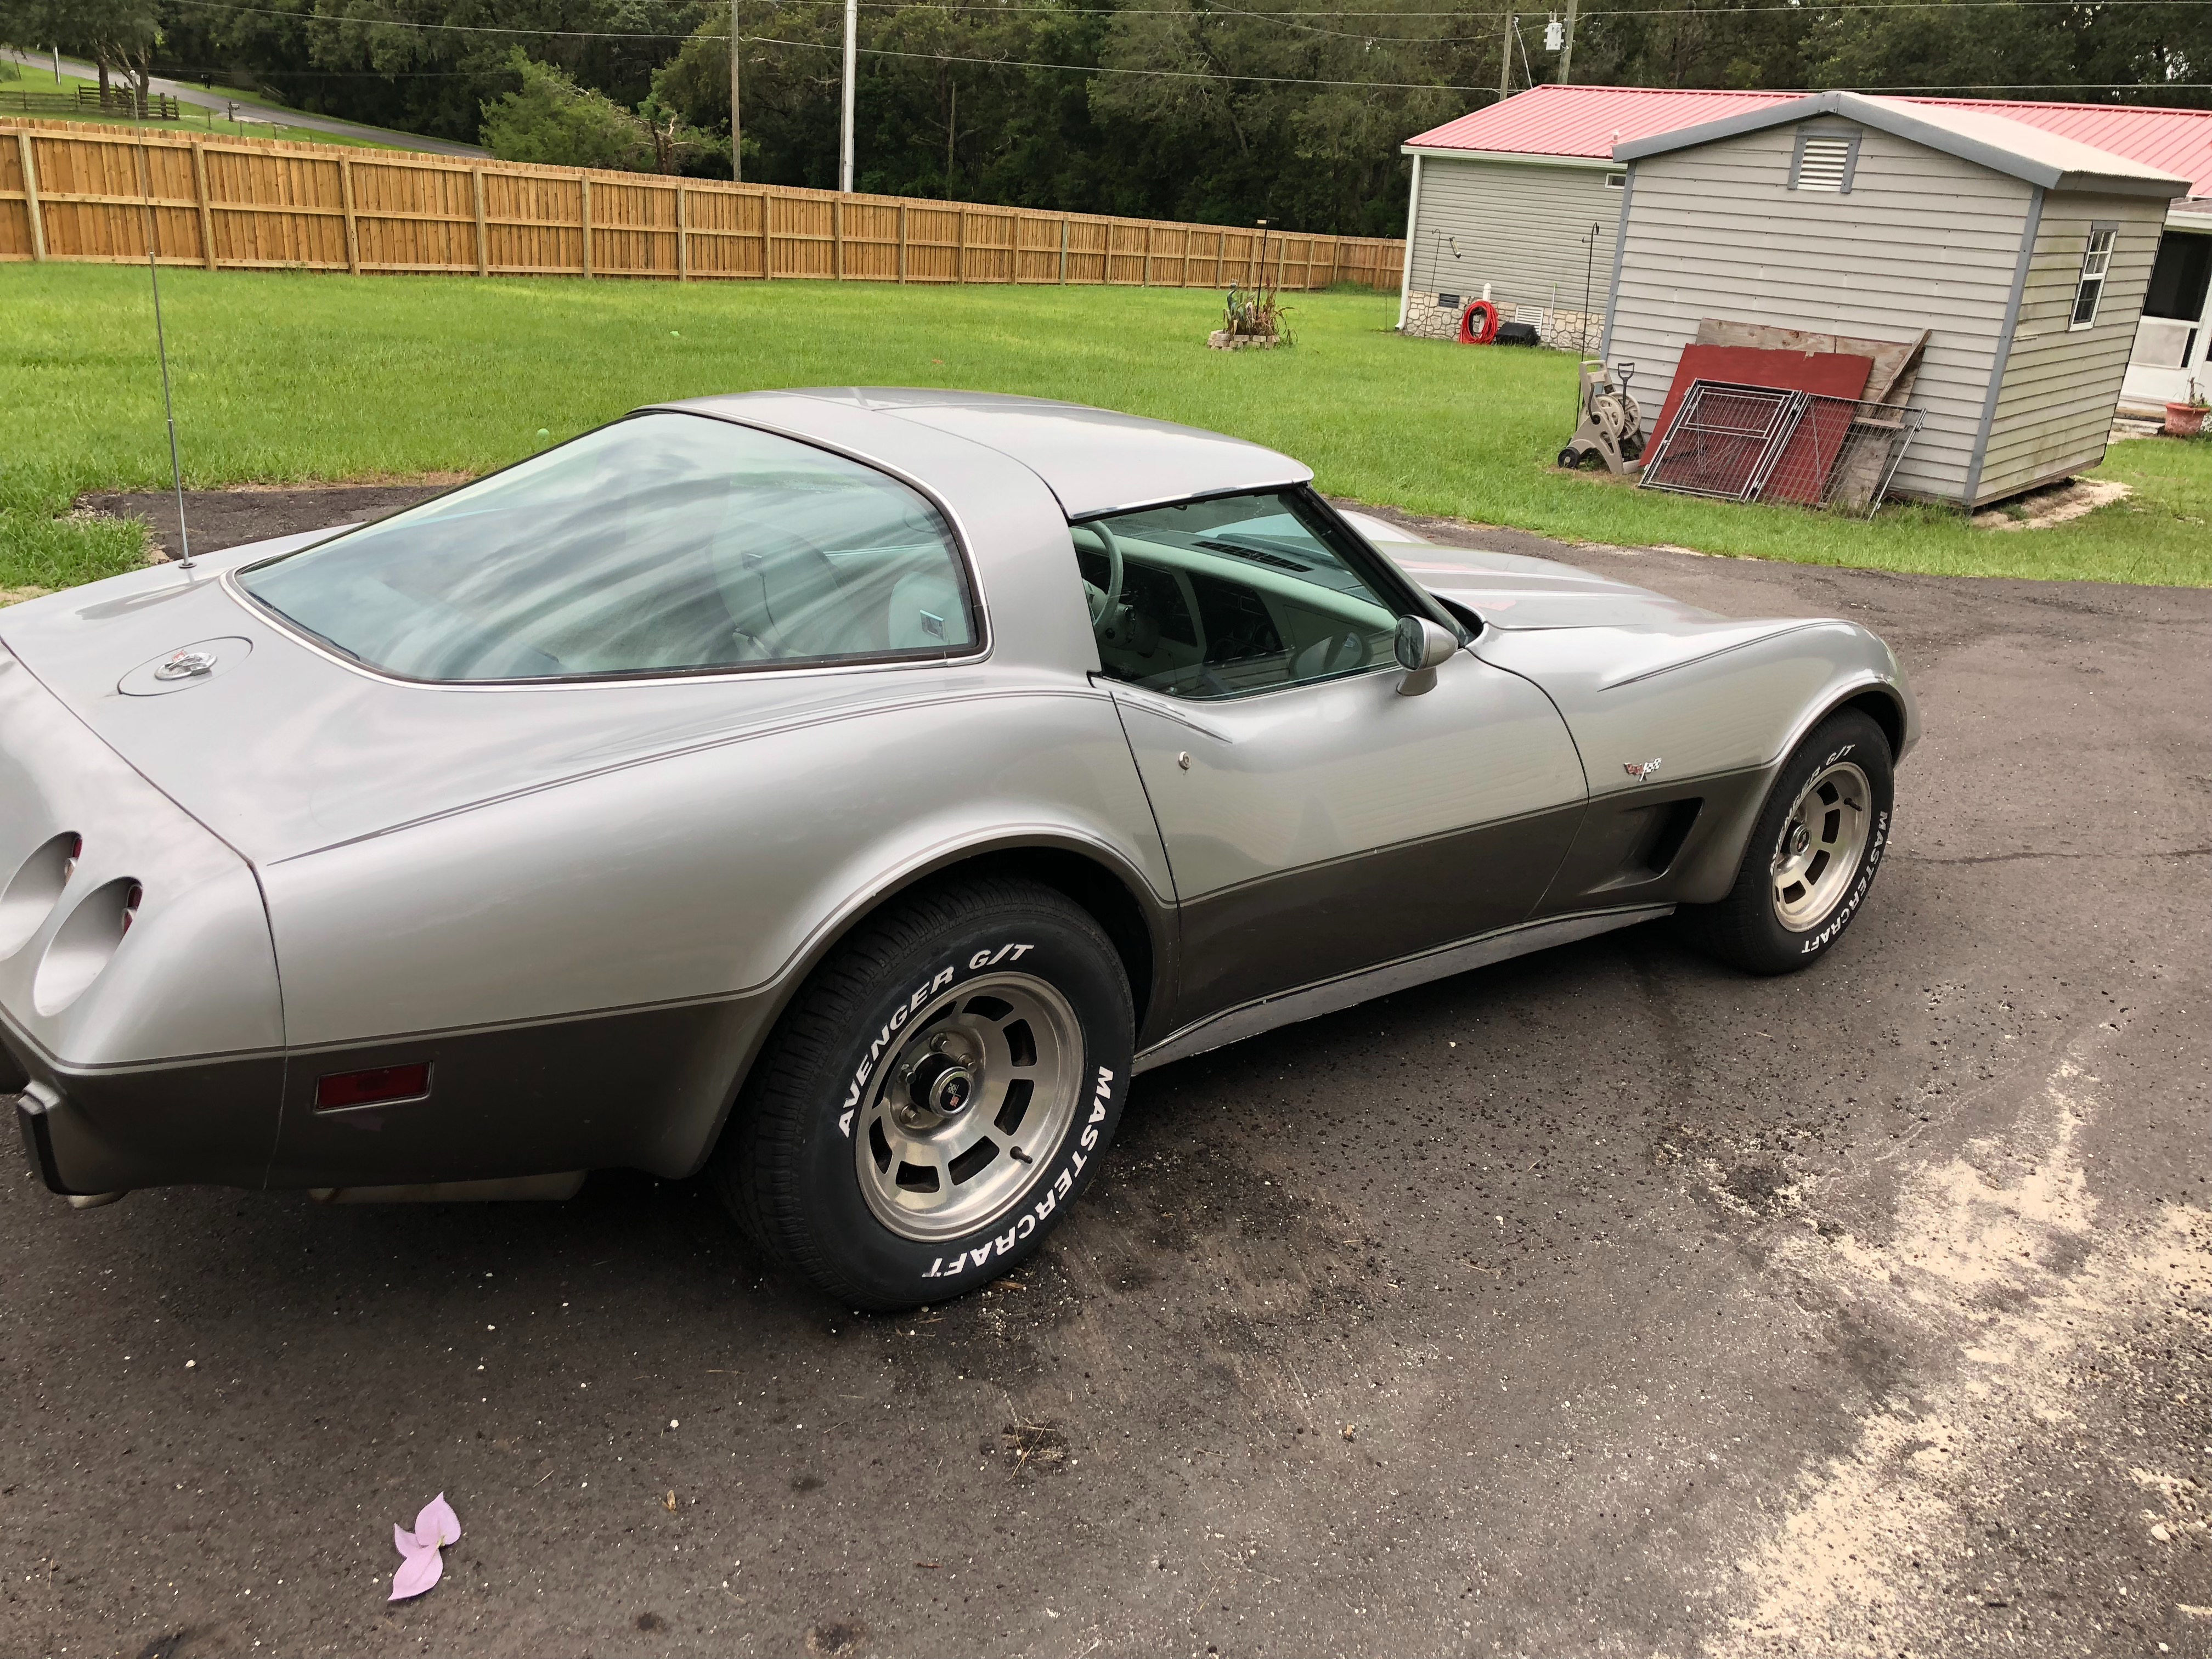 sell-1978-Chevy-Corvette-National-City